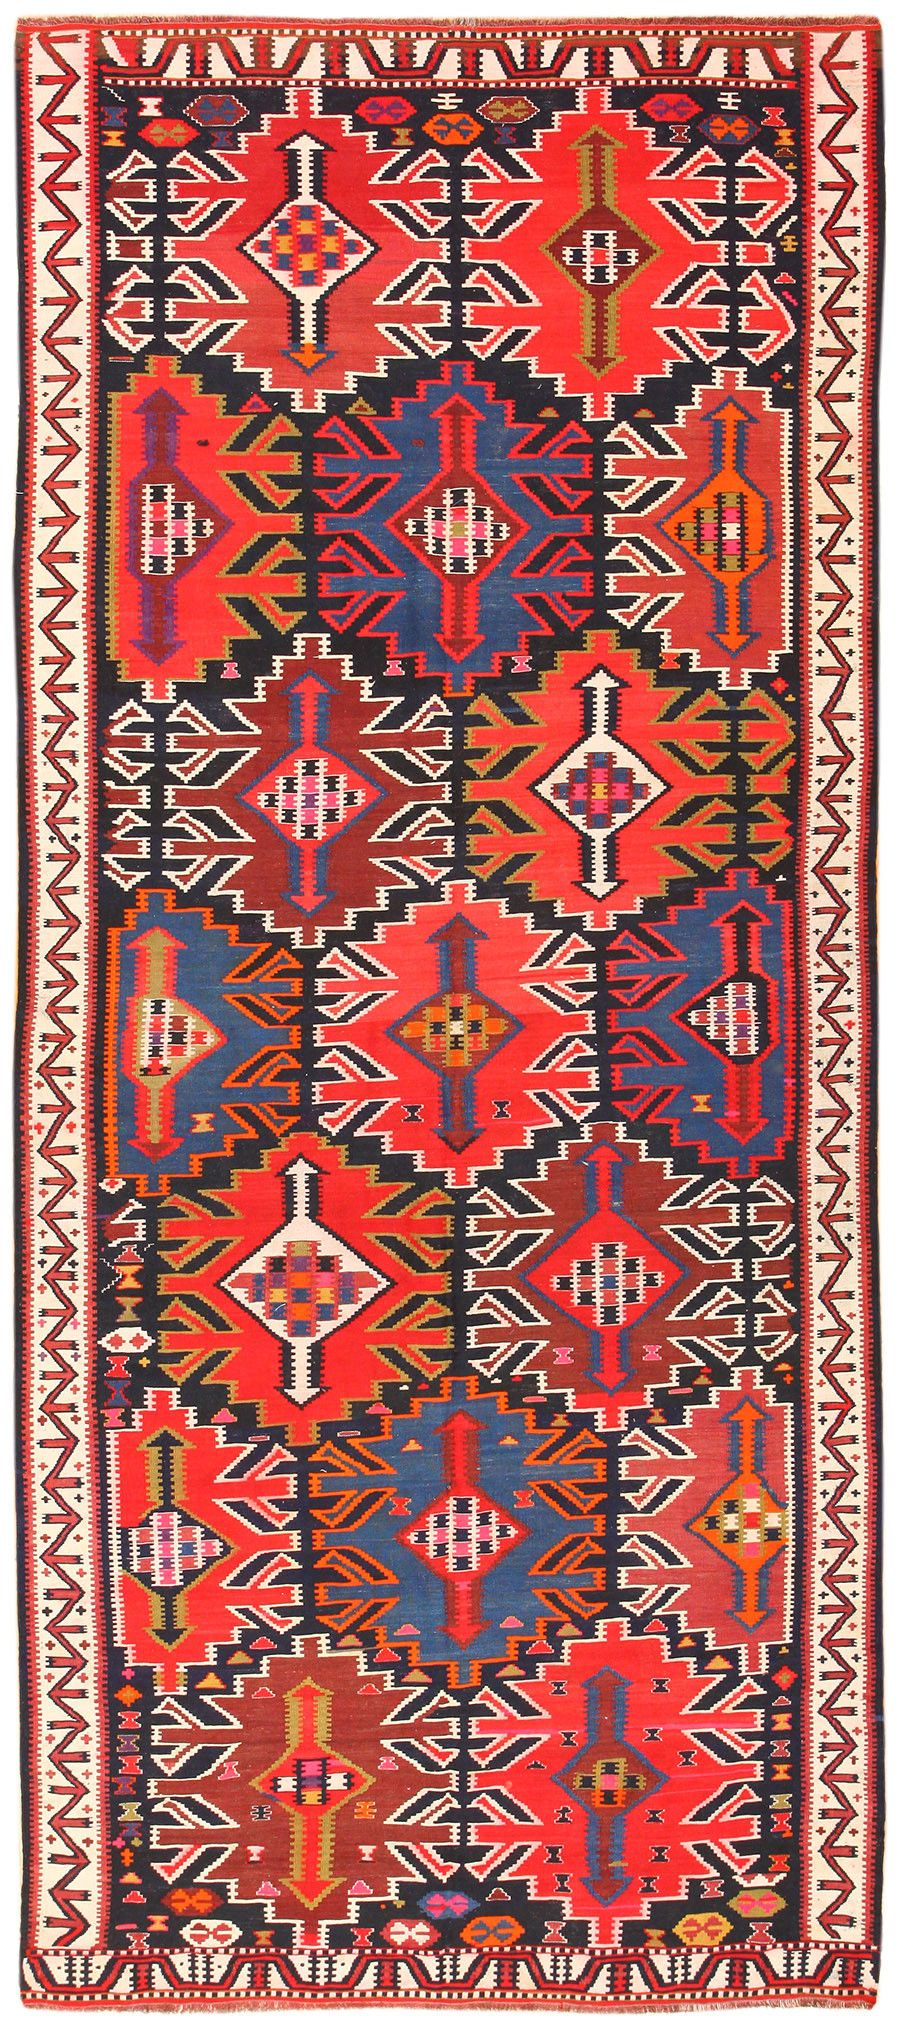 antique tribal turkish kuba kilim rug 50421 | antique rugs